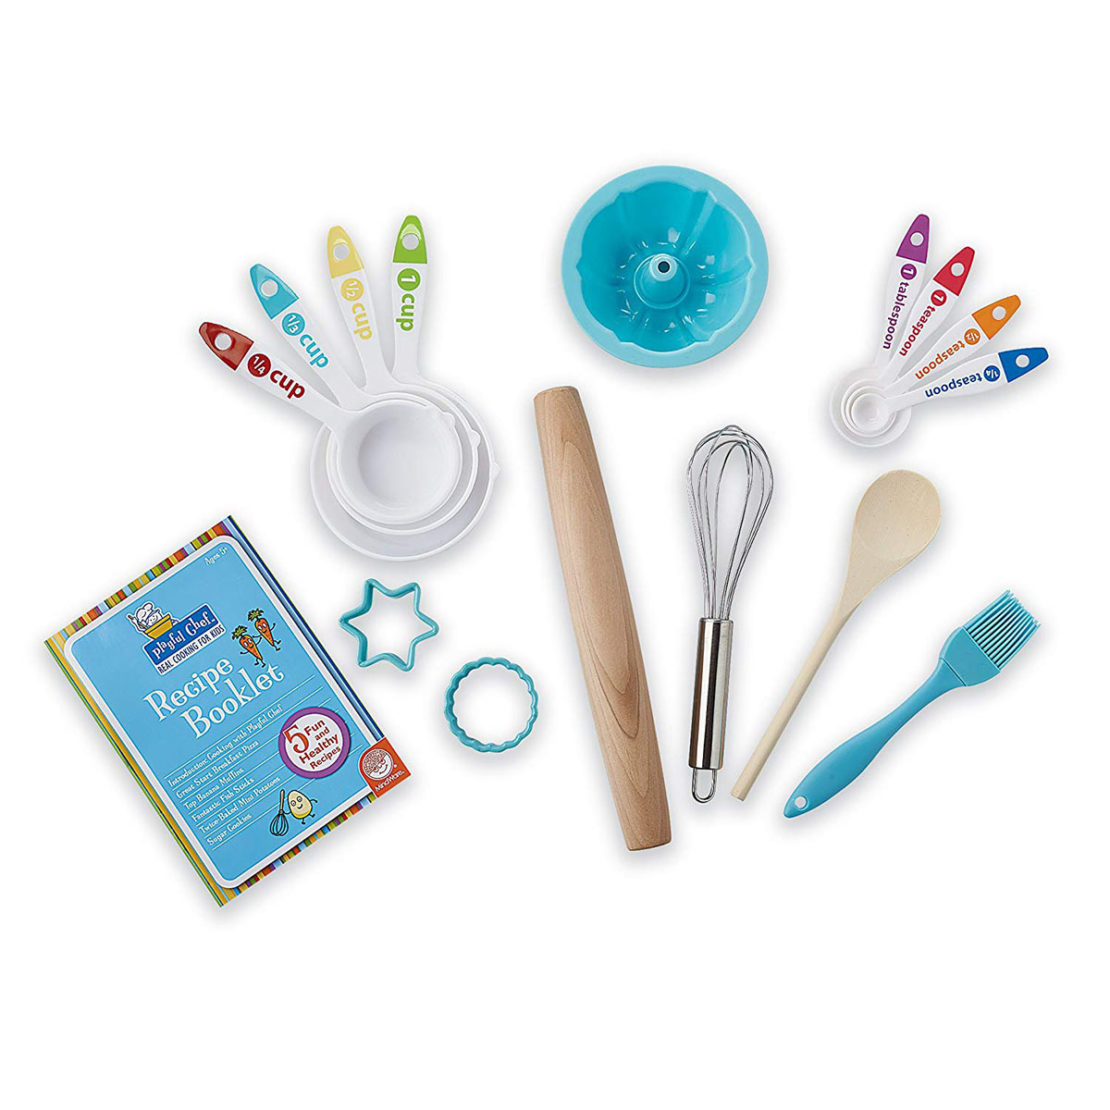 Playful Chef Baking Kit Contents